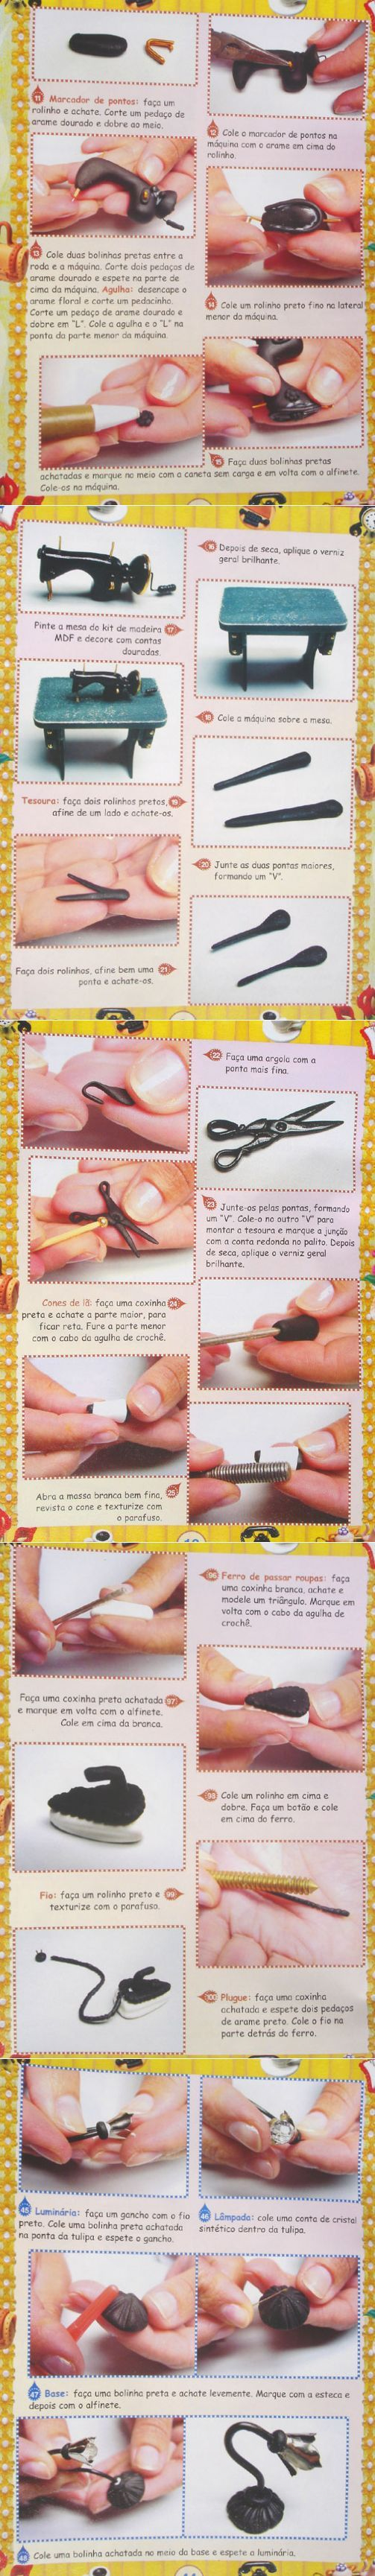 diy (illustrations) miniature vintage sewing machine for dollhouse or rumba